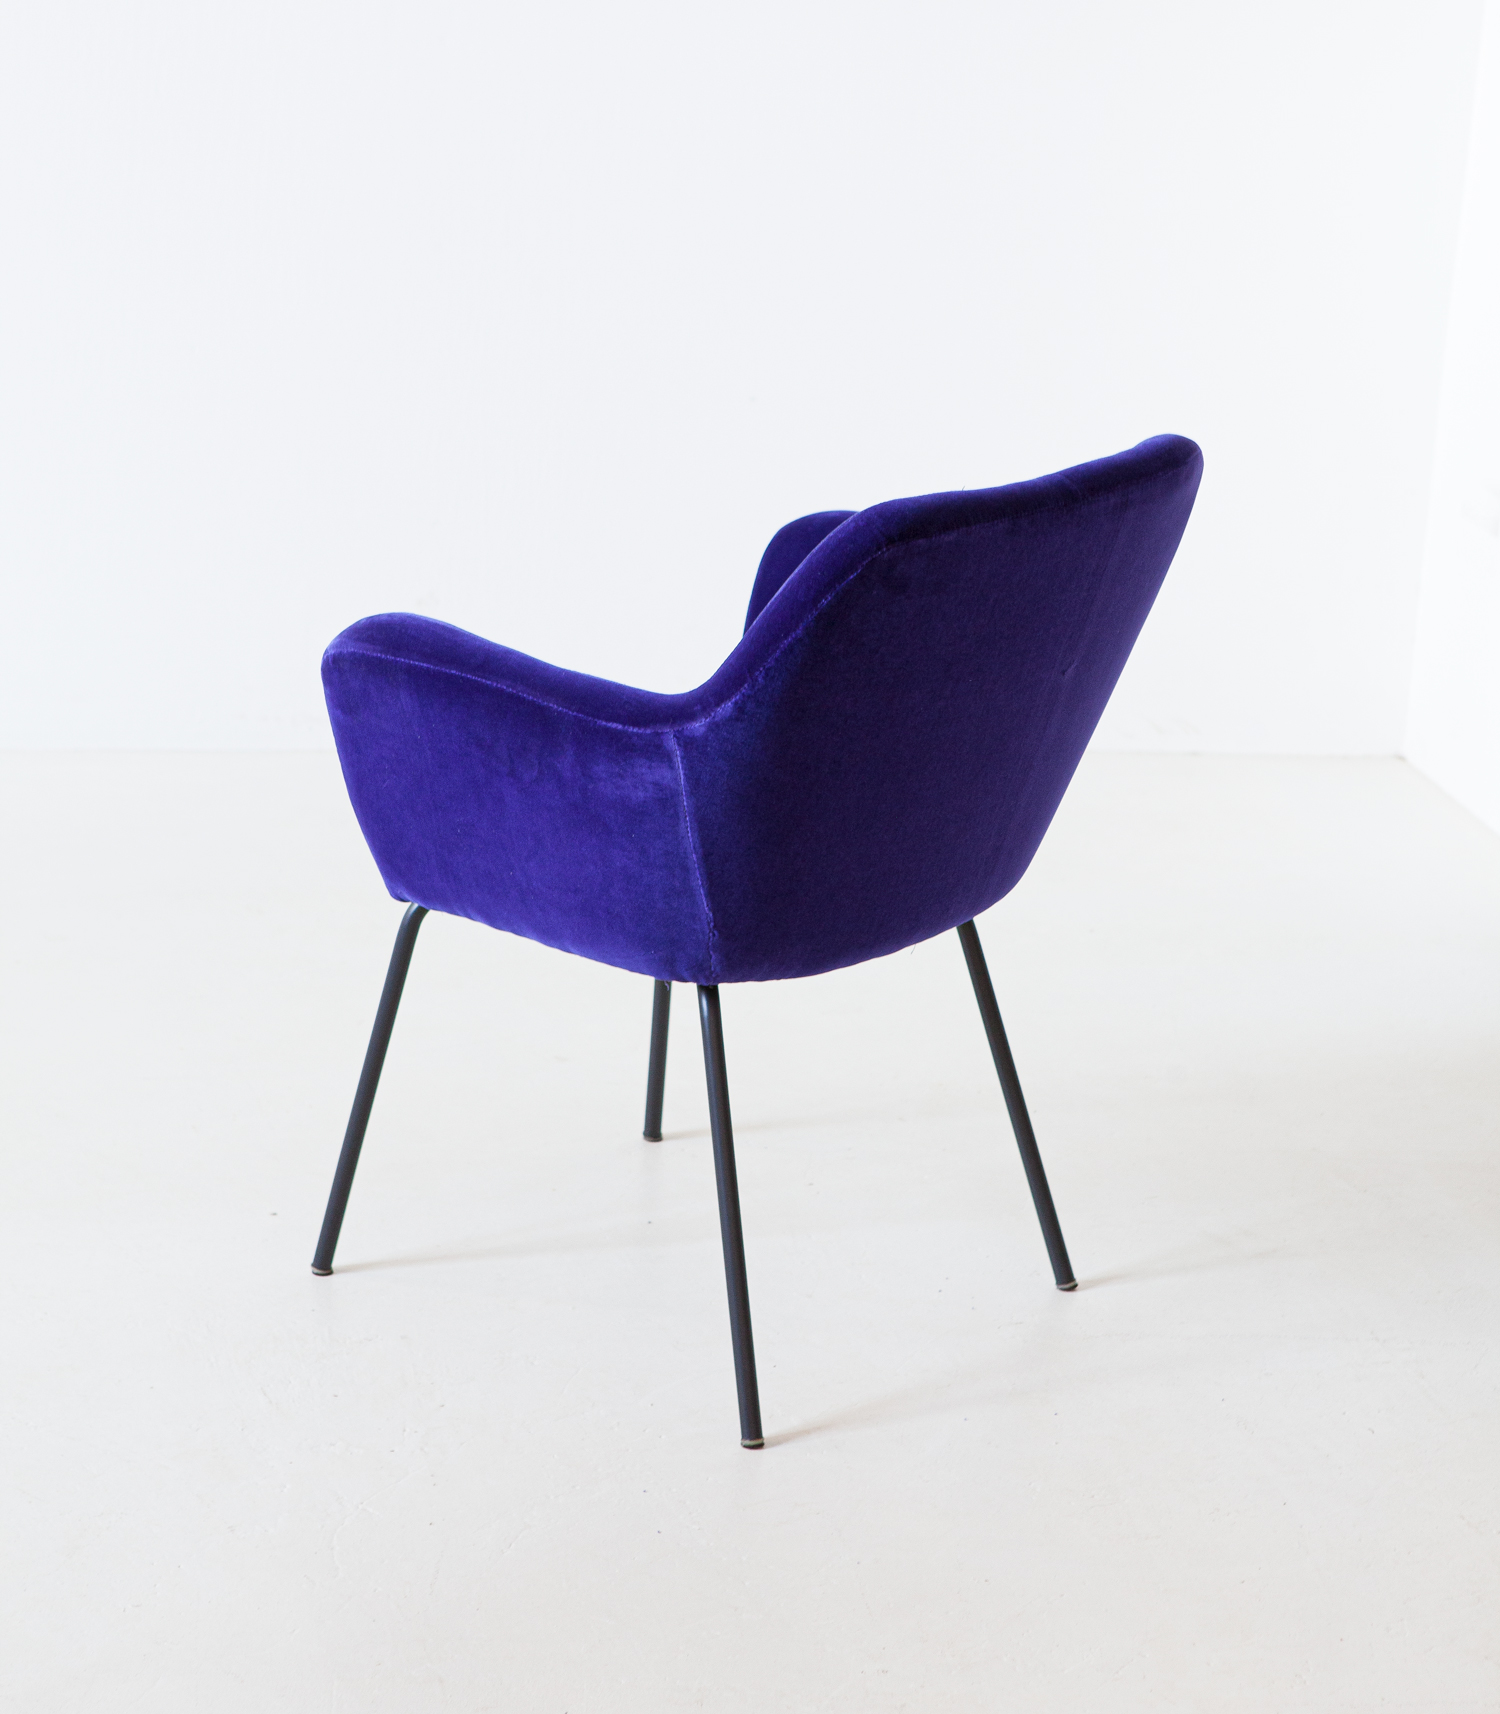 1950s-purle-velvet-armchair-by-studio-pfr-for--arflex-2-se318